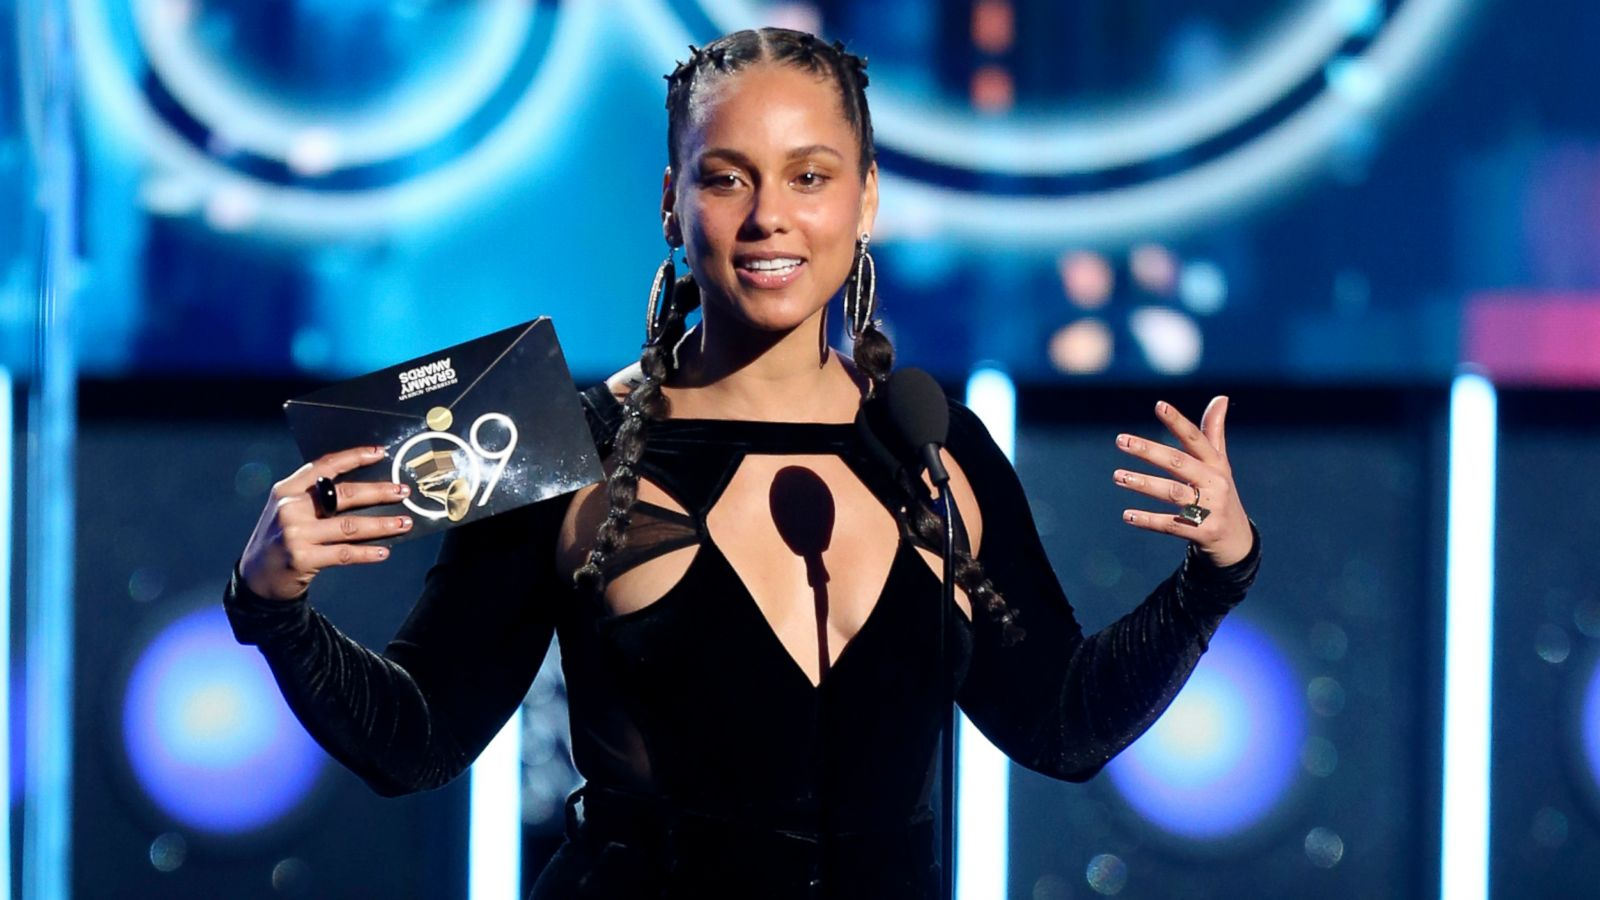 Alicia Keys shares sons' hilarious reactions to her Grammy